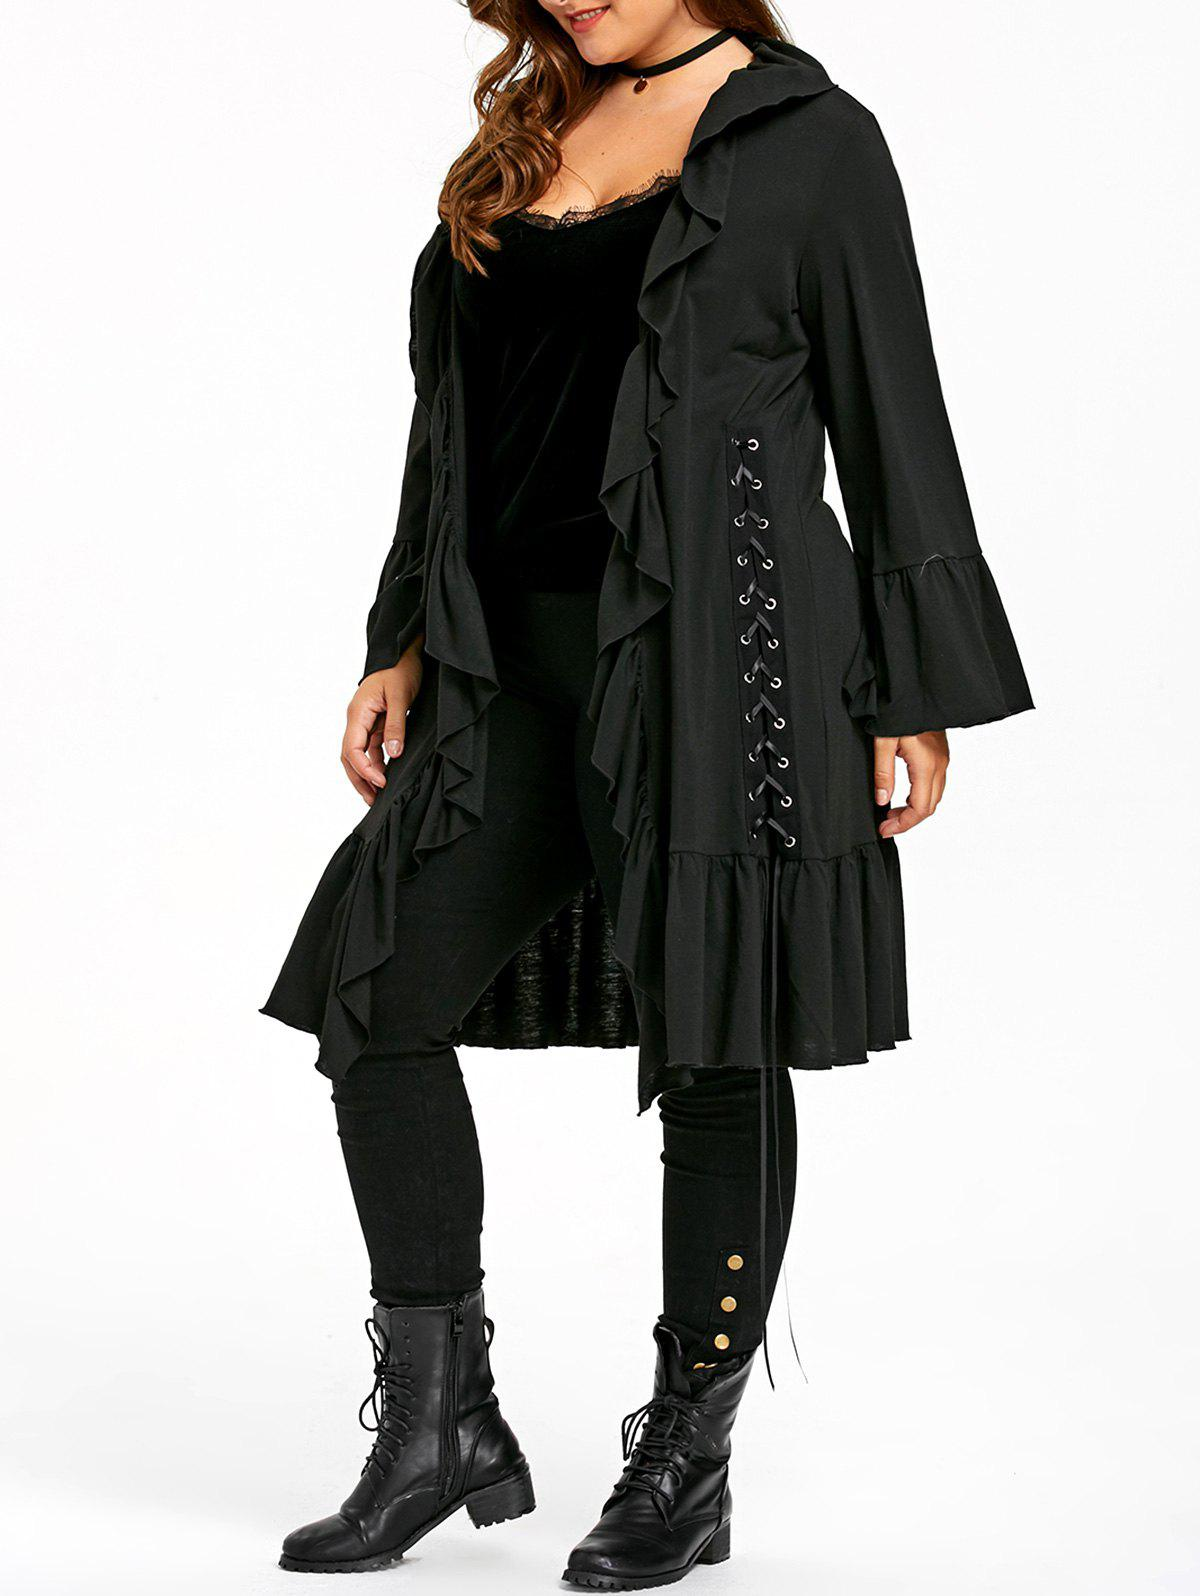 Plus Size Gothic Ruffle Lace Up CoatWOMEN<br><br>Size: 5XL; Color: BLACK; Clothes Type: Others; Material: Polyester,Spandex; Type: Slim; Shirt Length: Long; Sleeve Length: Full; Collar: Turn-down Collar; Pattern Type: Solid; Style: Gothic; Season: Fall,Spring; Weight: 0.5100kg; Package Contents: 1 x Coat;